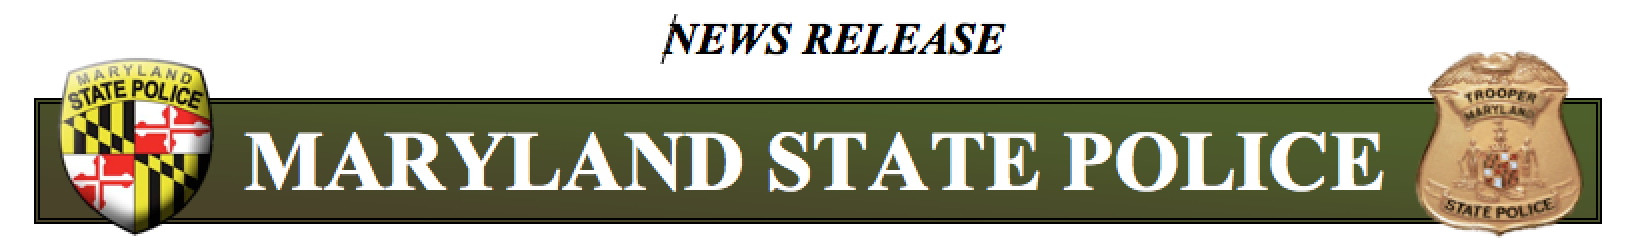 MD State Police Press Release